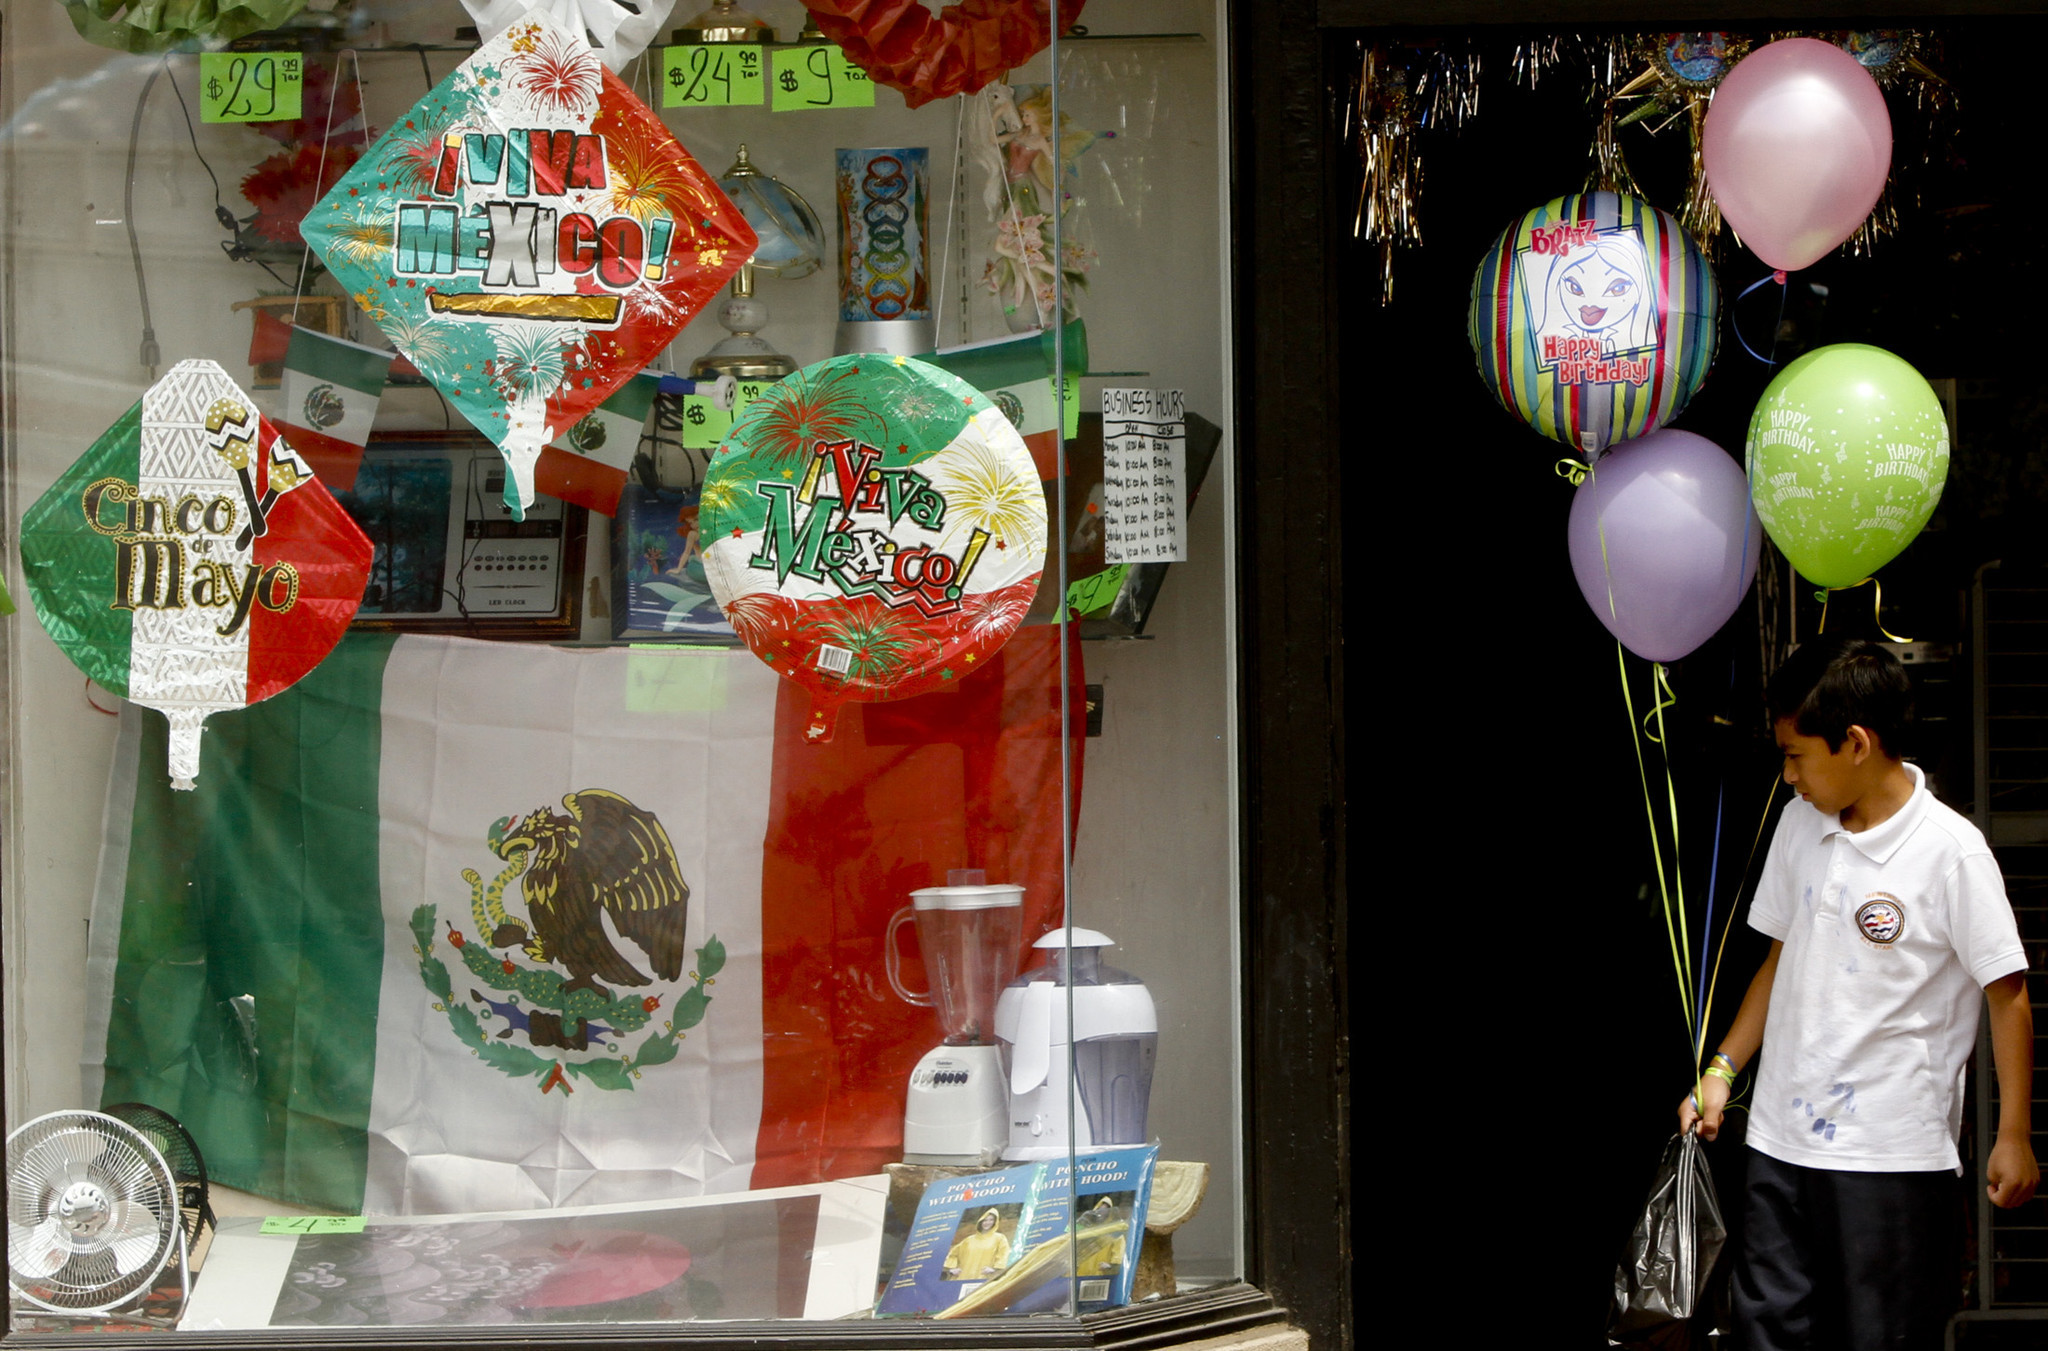 Alex Miramontes pauses in the doorway of the Double Discount store in downtown Santa Ana to look over the Cinco de Mayo display in the window.